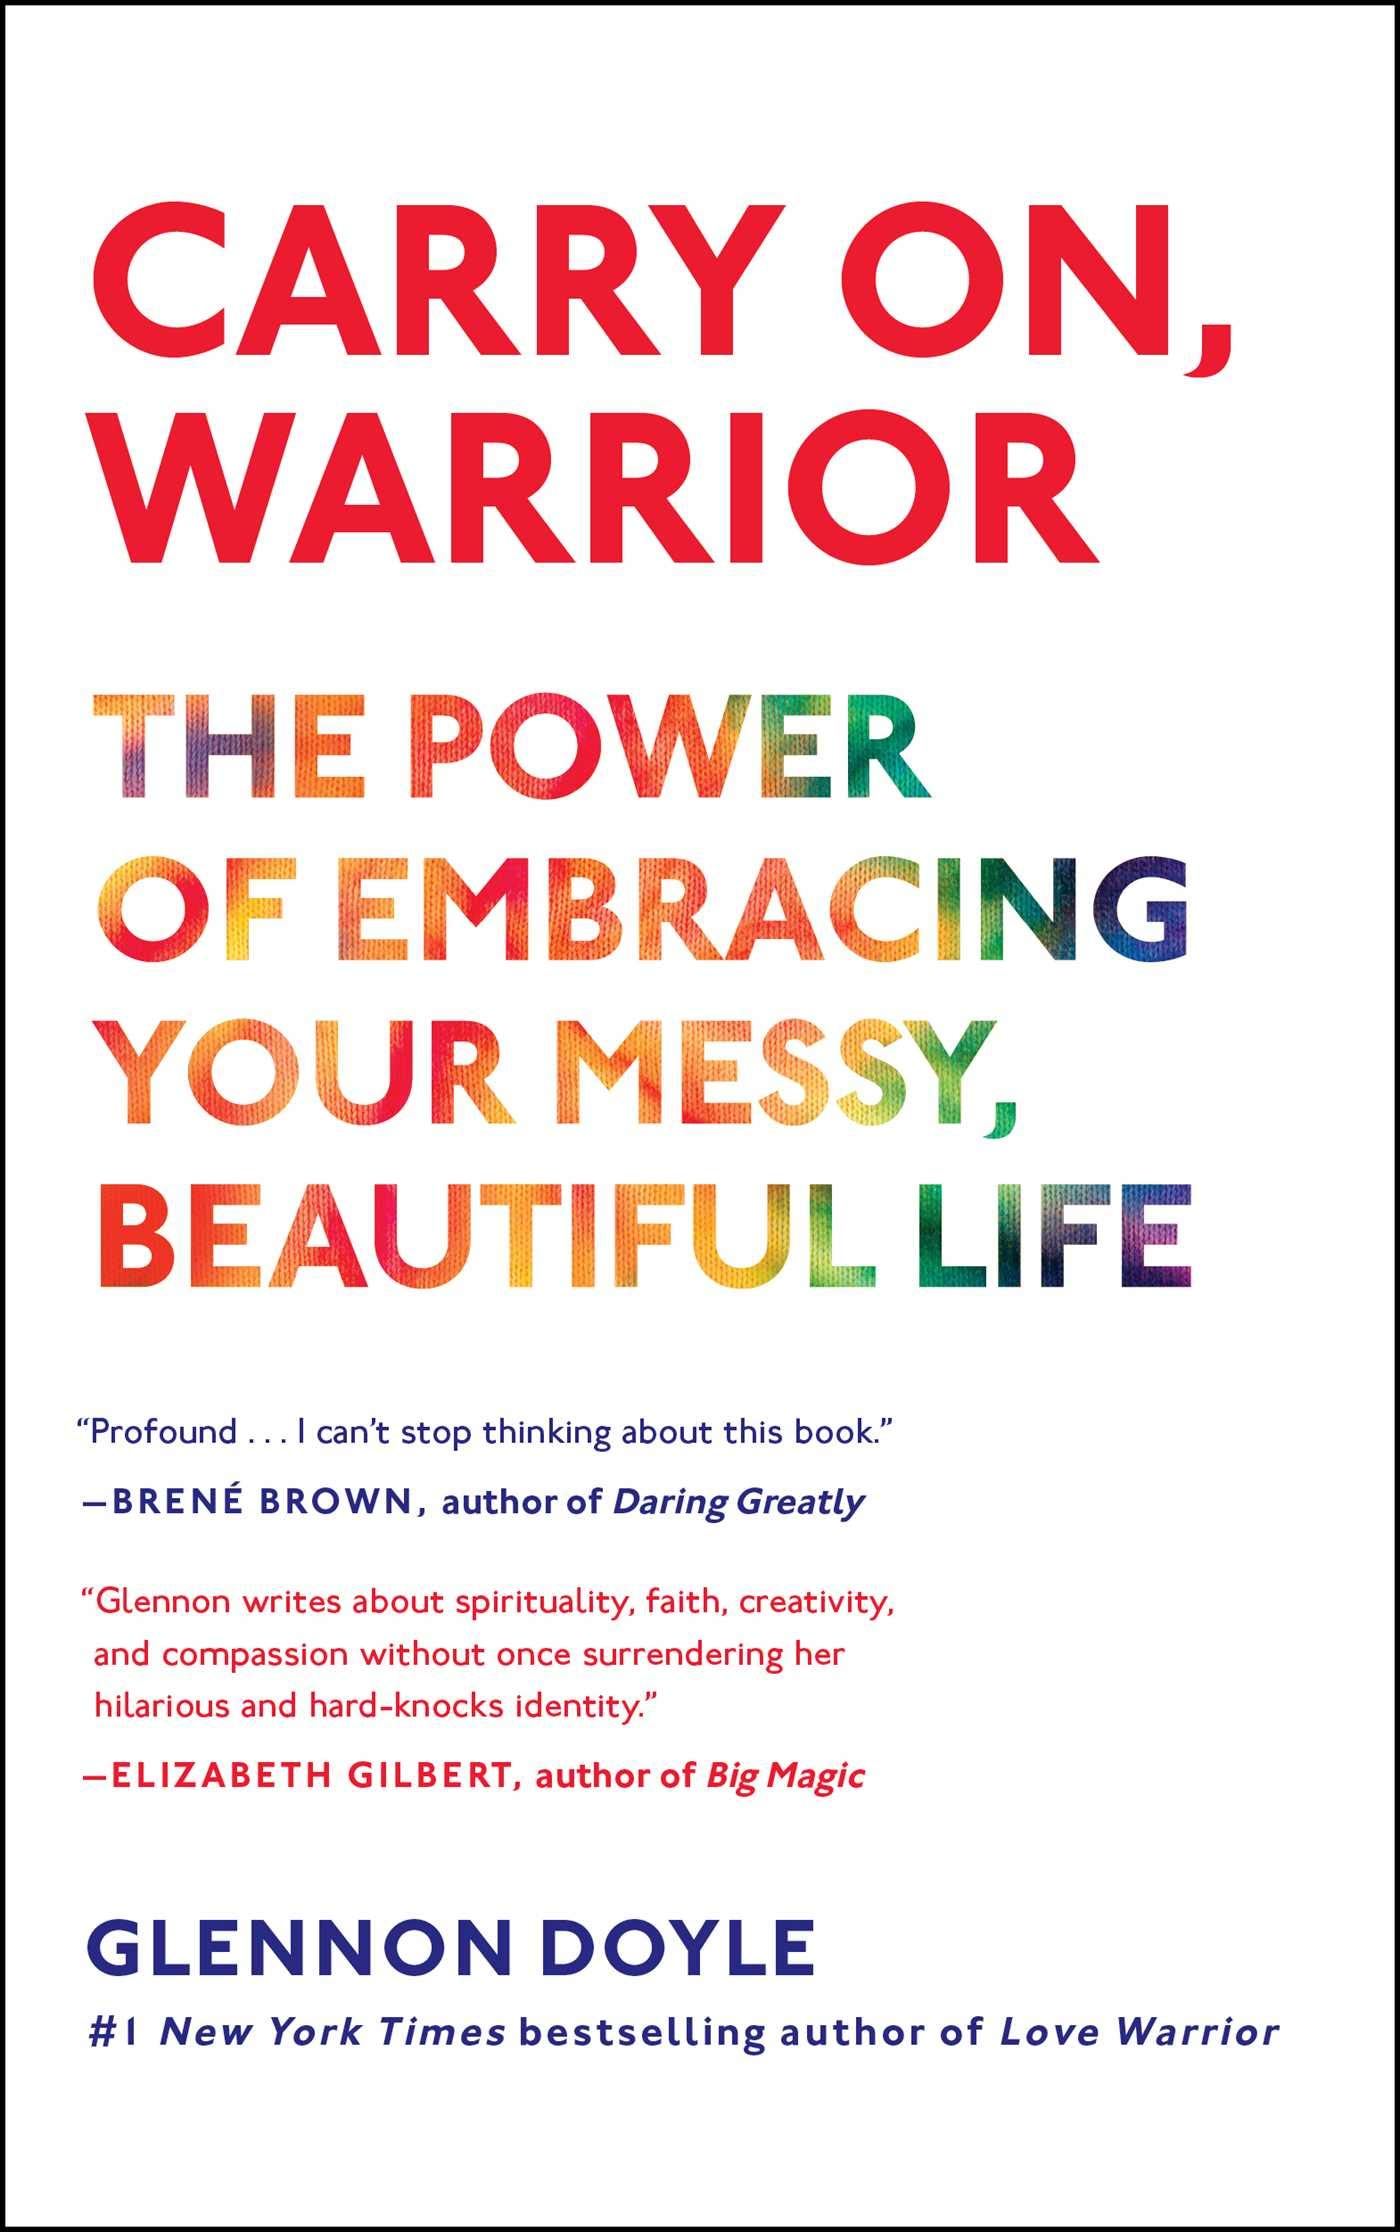 Image result for 'Carry on, warrior: The power of embracing your messy, beautiful life' by Glennon Doyle Melton.